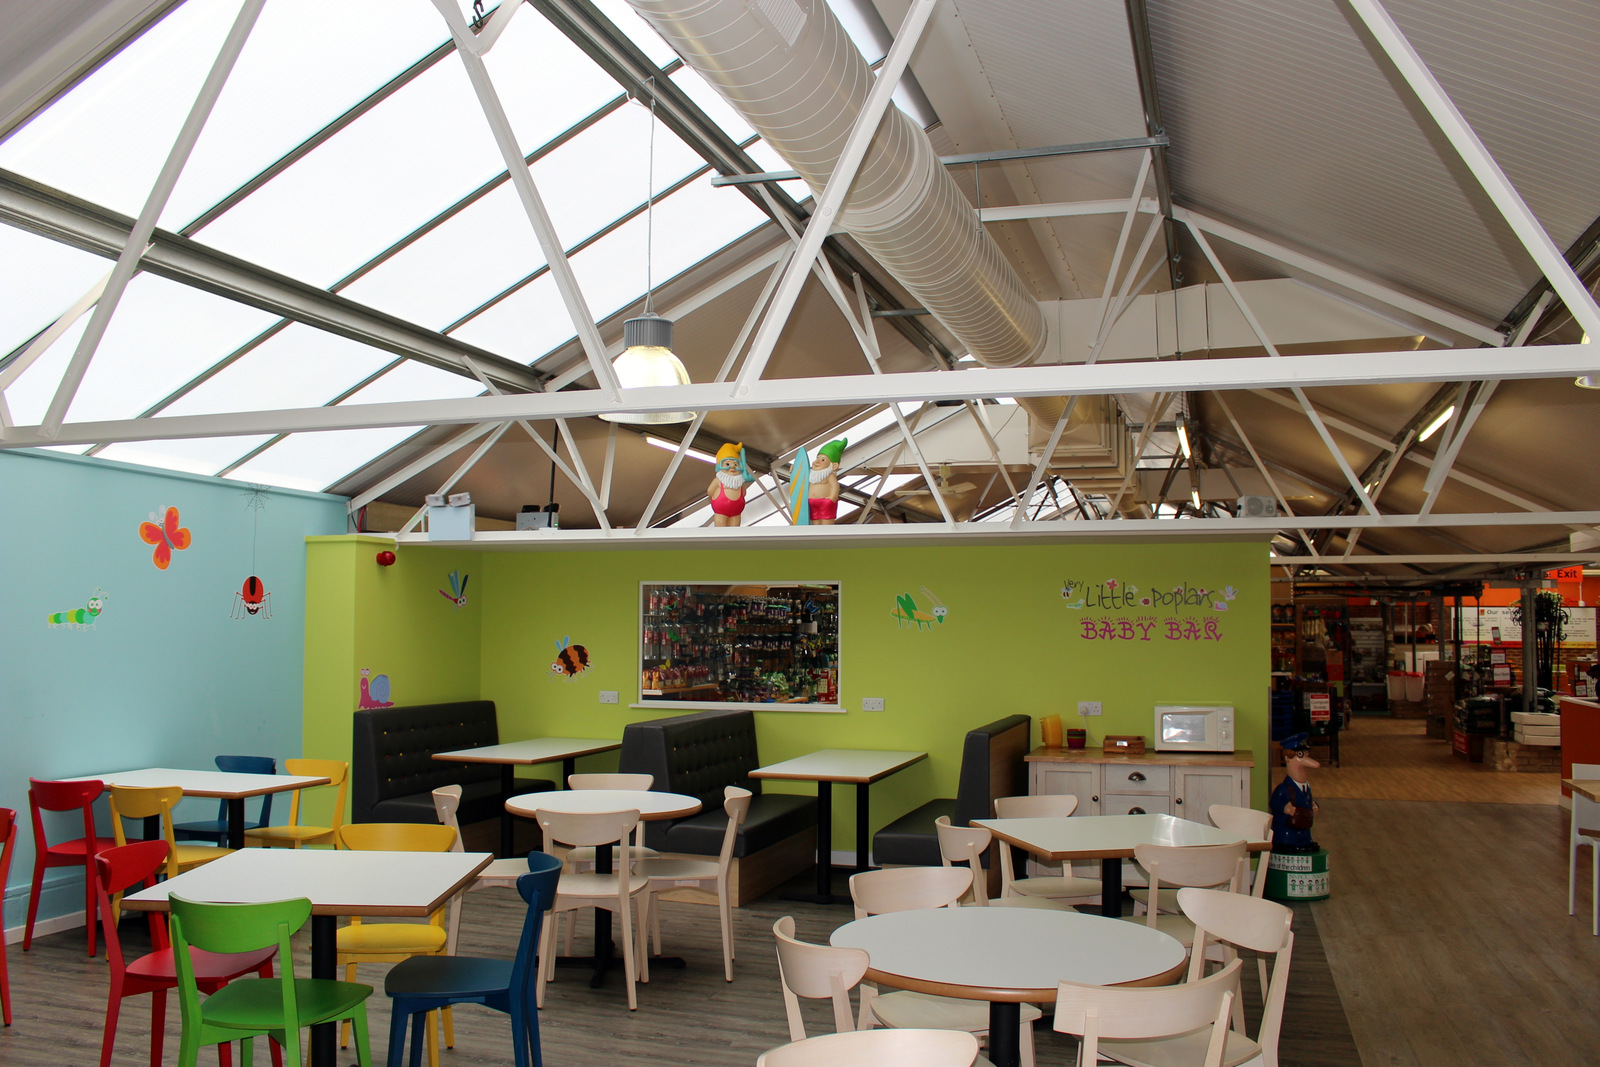 361 Degrees Café Heating Air Conditioning Renovation Poplars Garden Centre suspended gas fired unit heater fabric duct air induction system powder coated duct system